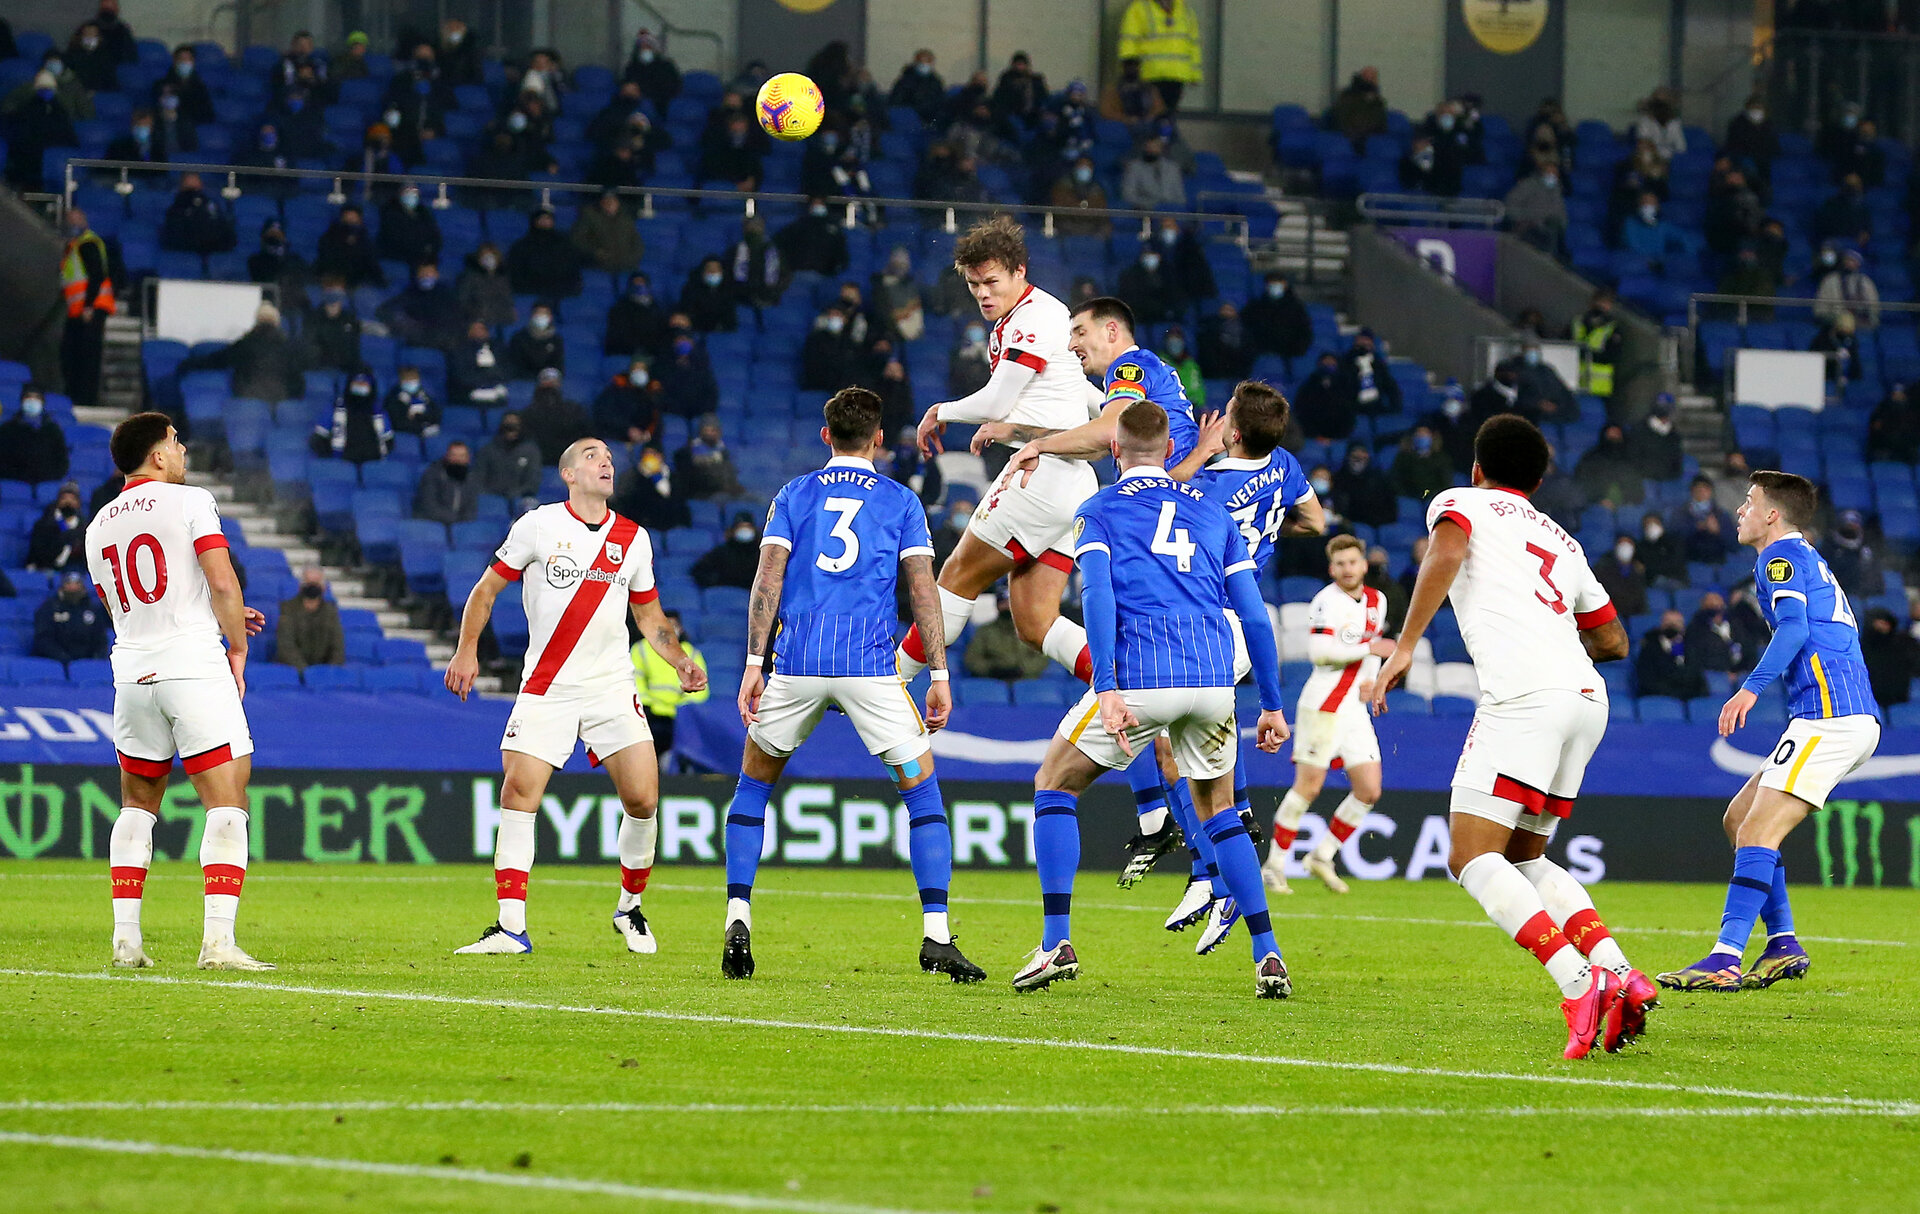 BRIGHTON, ENGLAND - DECEMBER 07: Jannik Vestergaard of Southampton rises highest to score and make it 1-1 during the Premier League match between Brighton & Hove Albion and Southampton at American Express Community Stadium on December 07, 2020 in Brighton, England. A limited number of fans (2000) are welcomed back to stadiums to watch elite football across England. This was following easing of restrictions on spectators in tiers one and two areas only. (Photo by Matt Watson/Southampton FC via Getty Images)